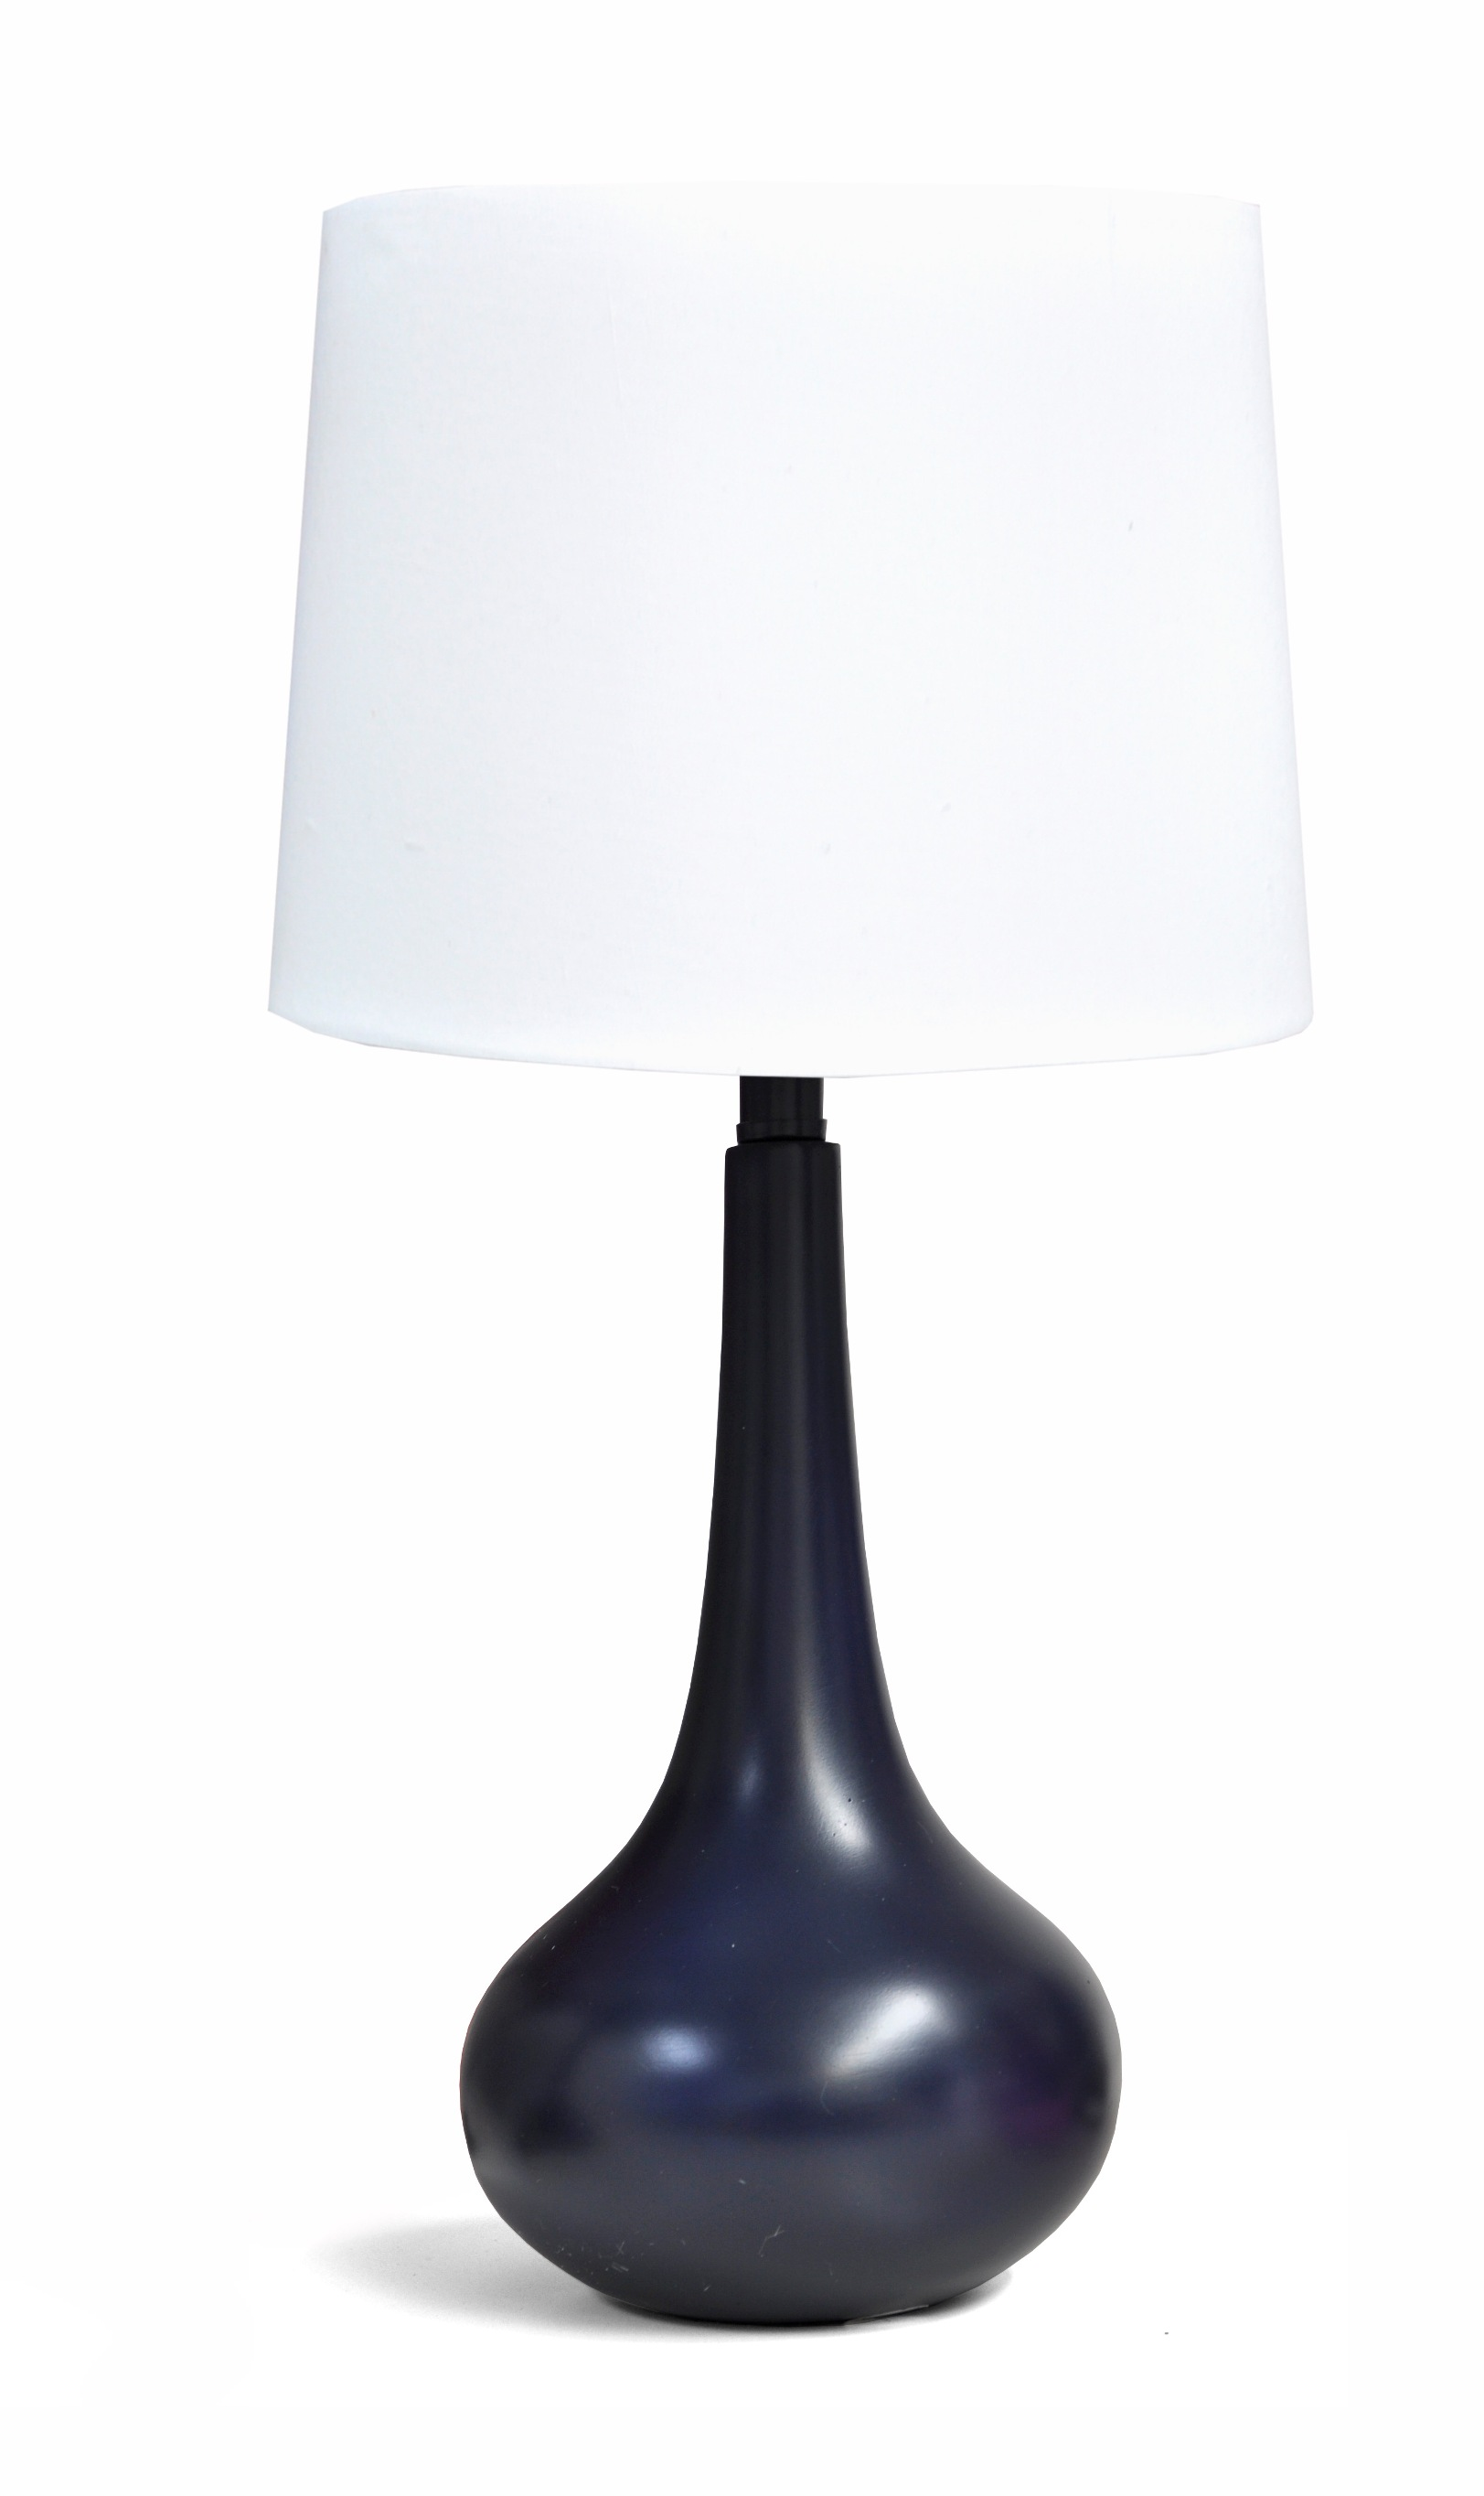 Navy Candy Drop Lamp with White Shade PartNumber: 02482106000P KsnValue: 02482106000 MfgPartNumber: SK639055